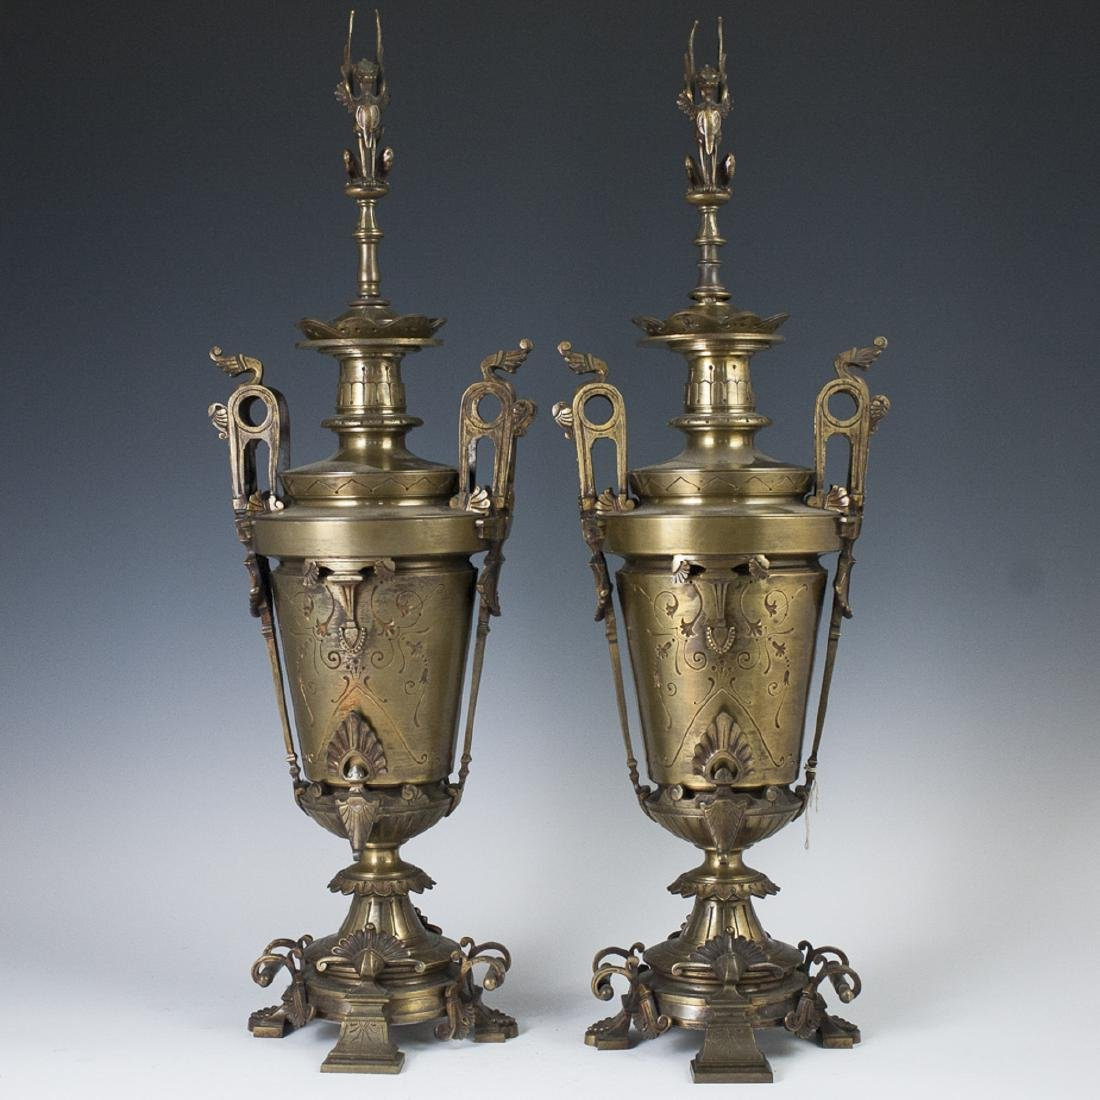 Antique French Bronze Gothic Revival Urns